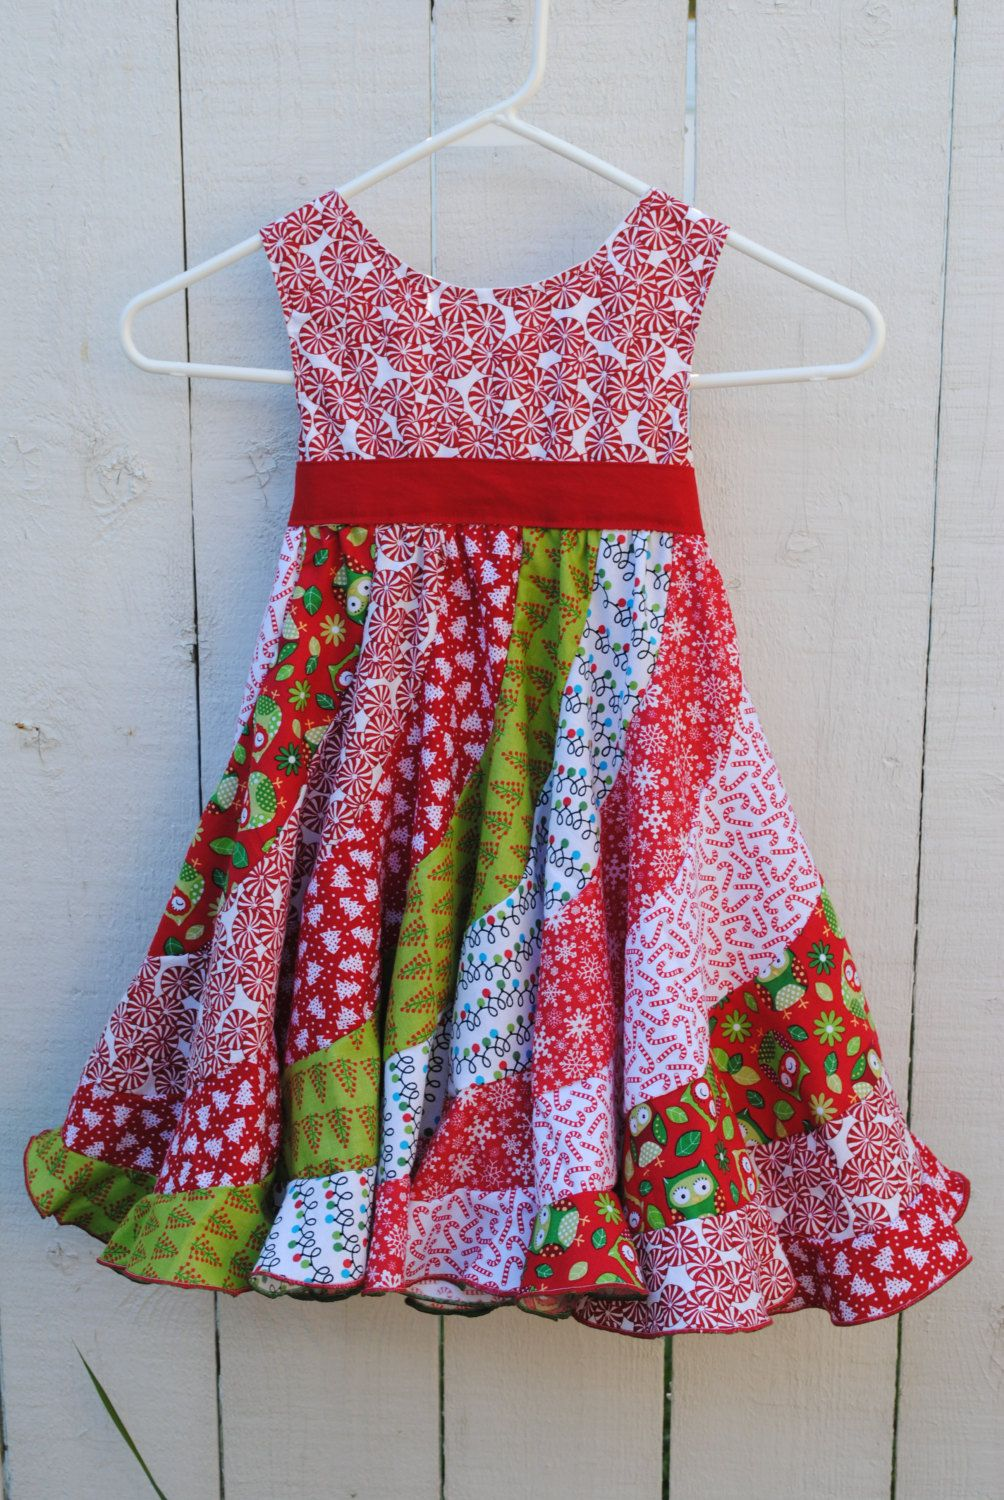 Christmas Peppermint Swirl Dress - Size 3T fits up to 21.5\